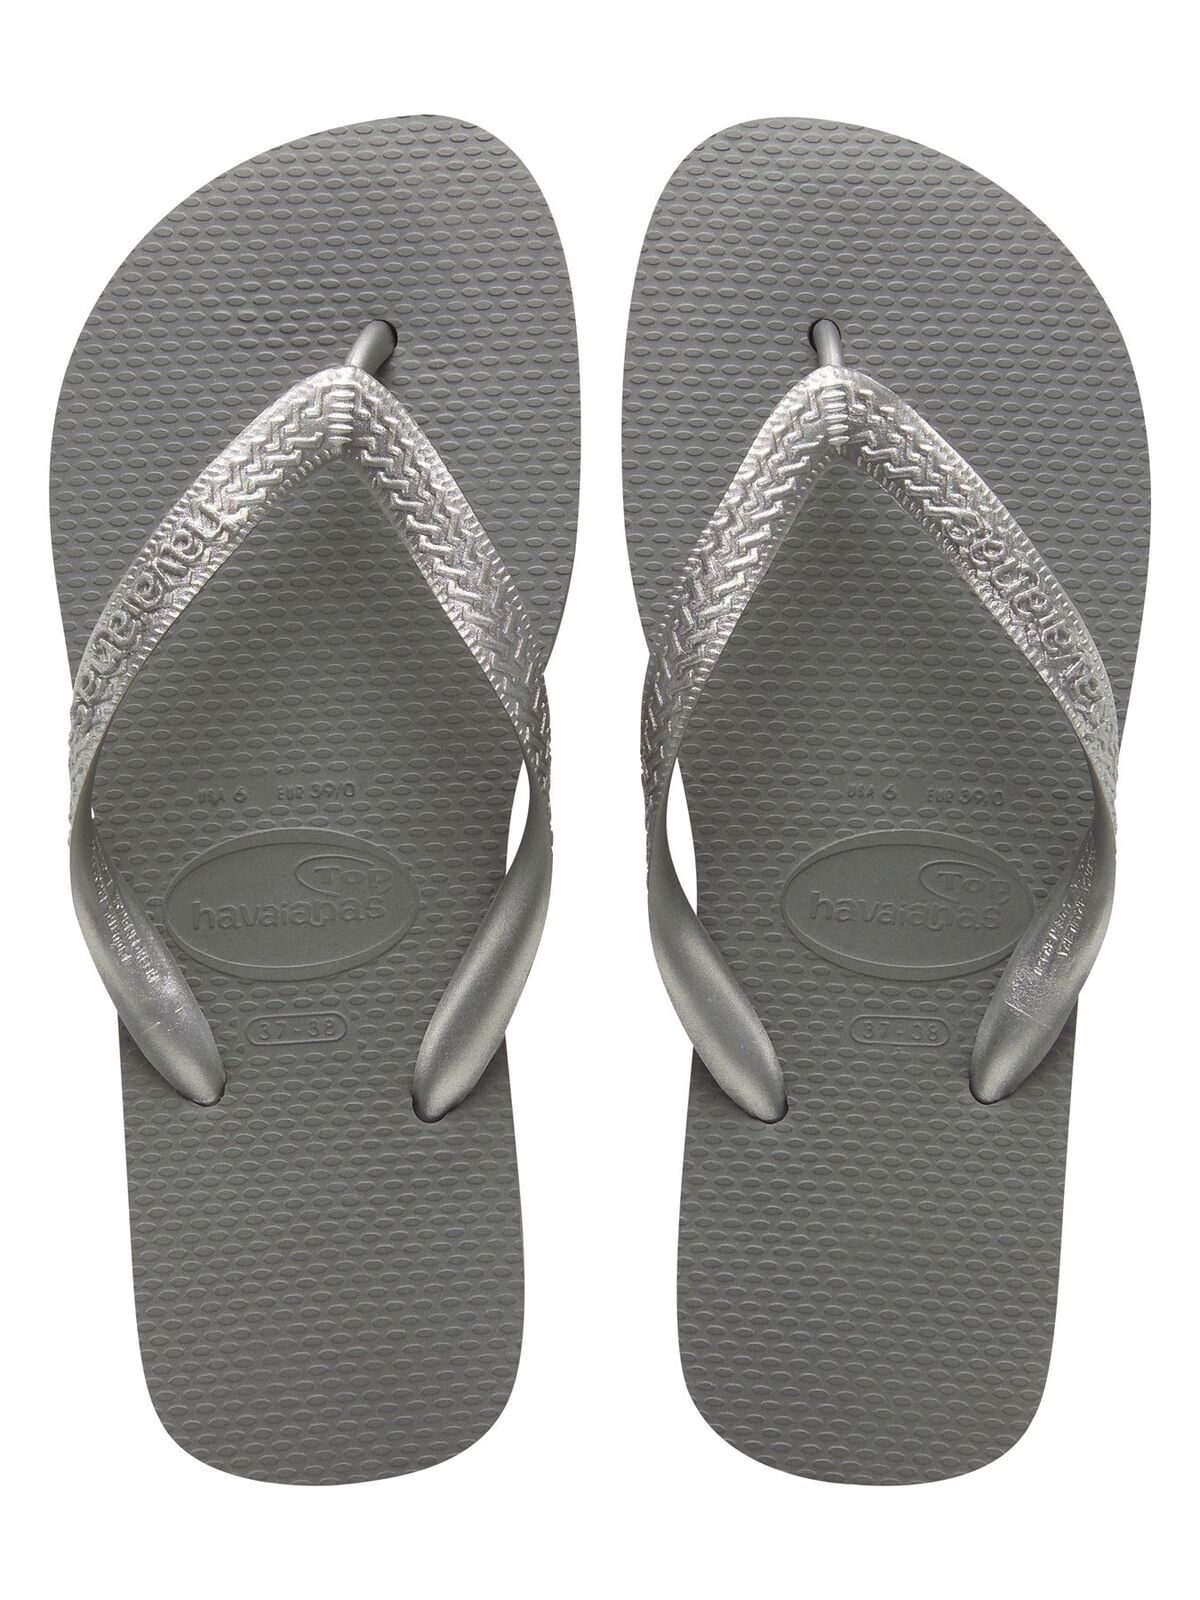 Gentlemen/Ladies Havaianas Top silber Zehentrenner Various Guarantee quality and quantity Various Zehentrenner types and styles Various ce7cc6